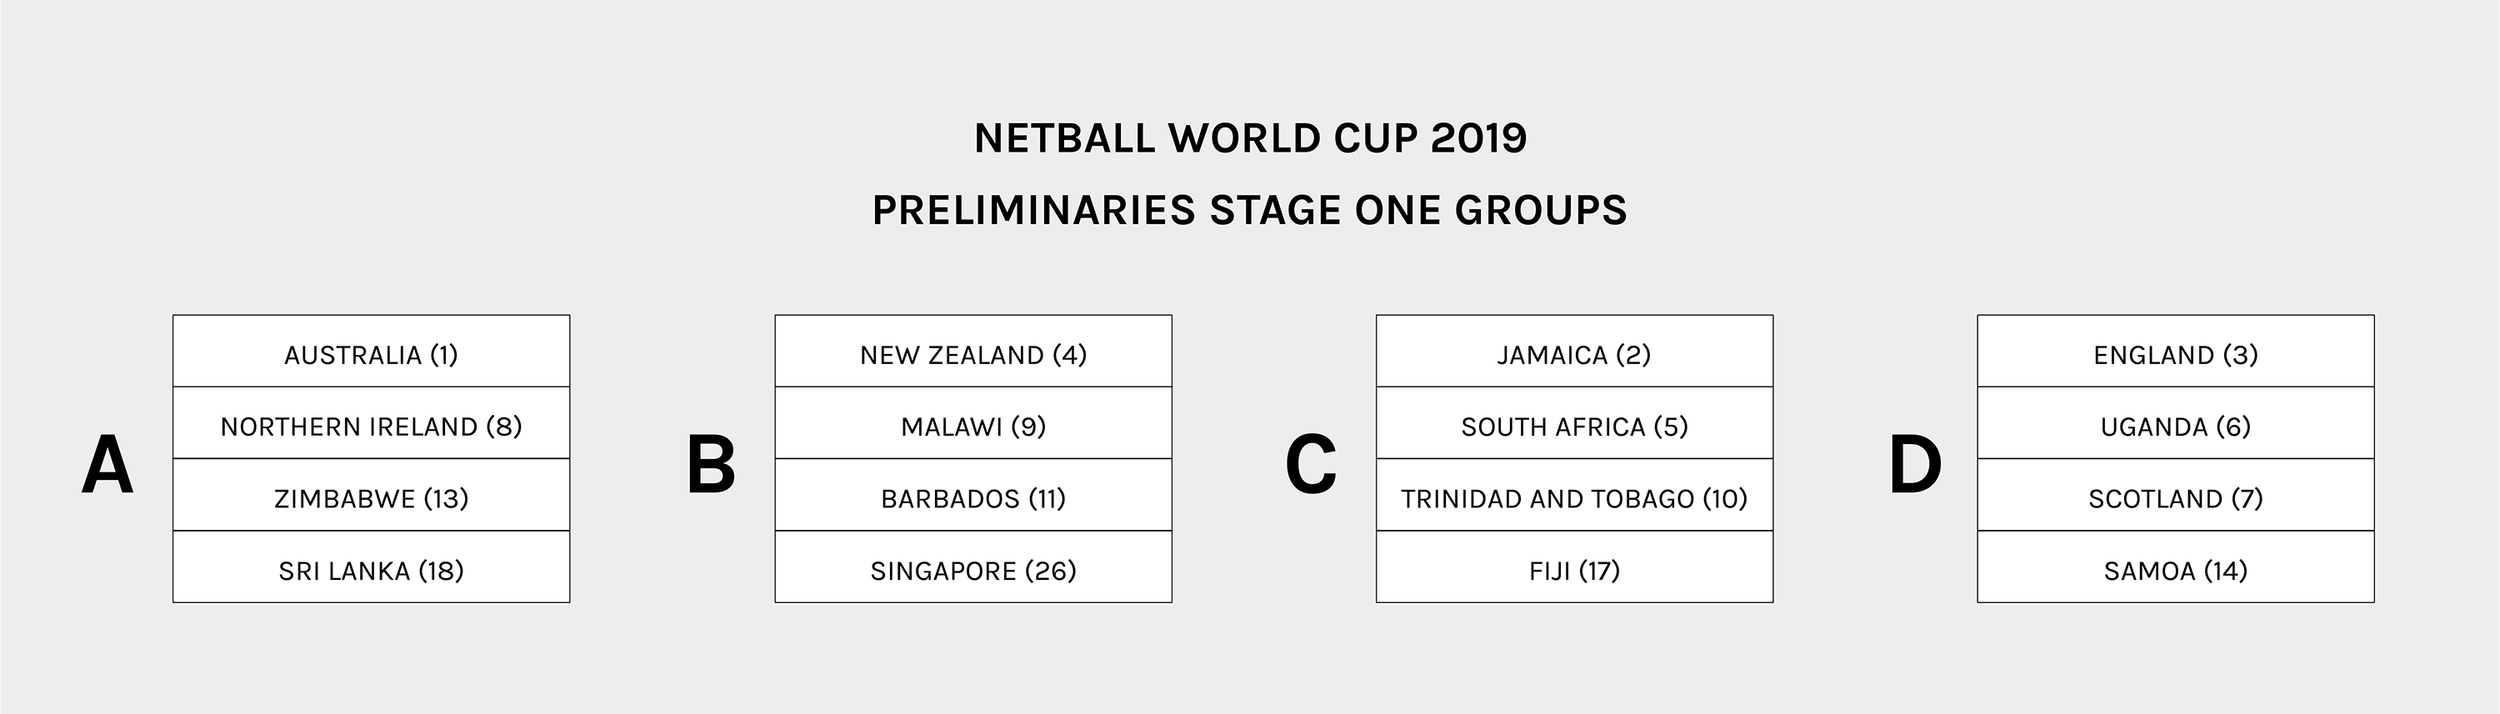 NWC-FORMAT-GROUPS2.png